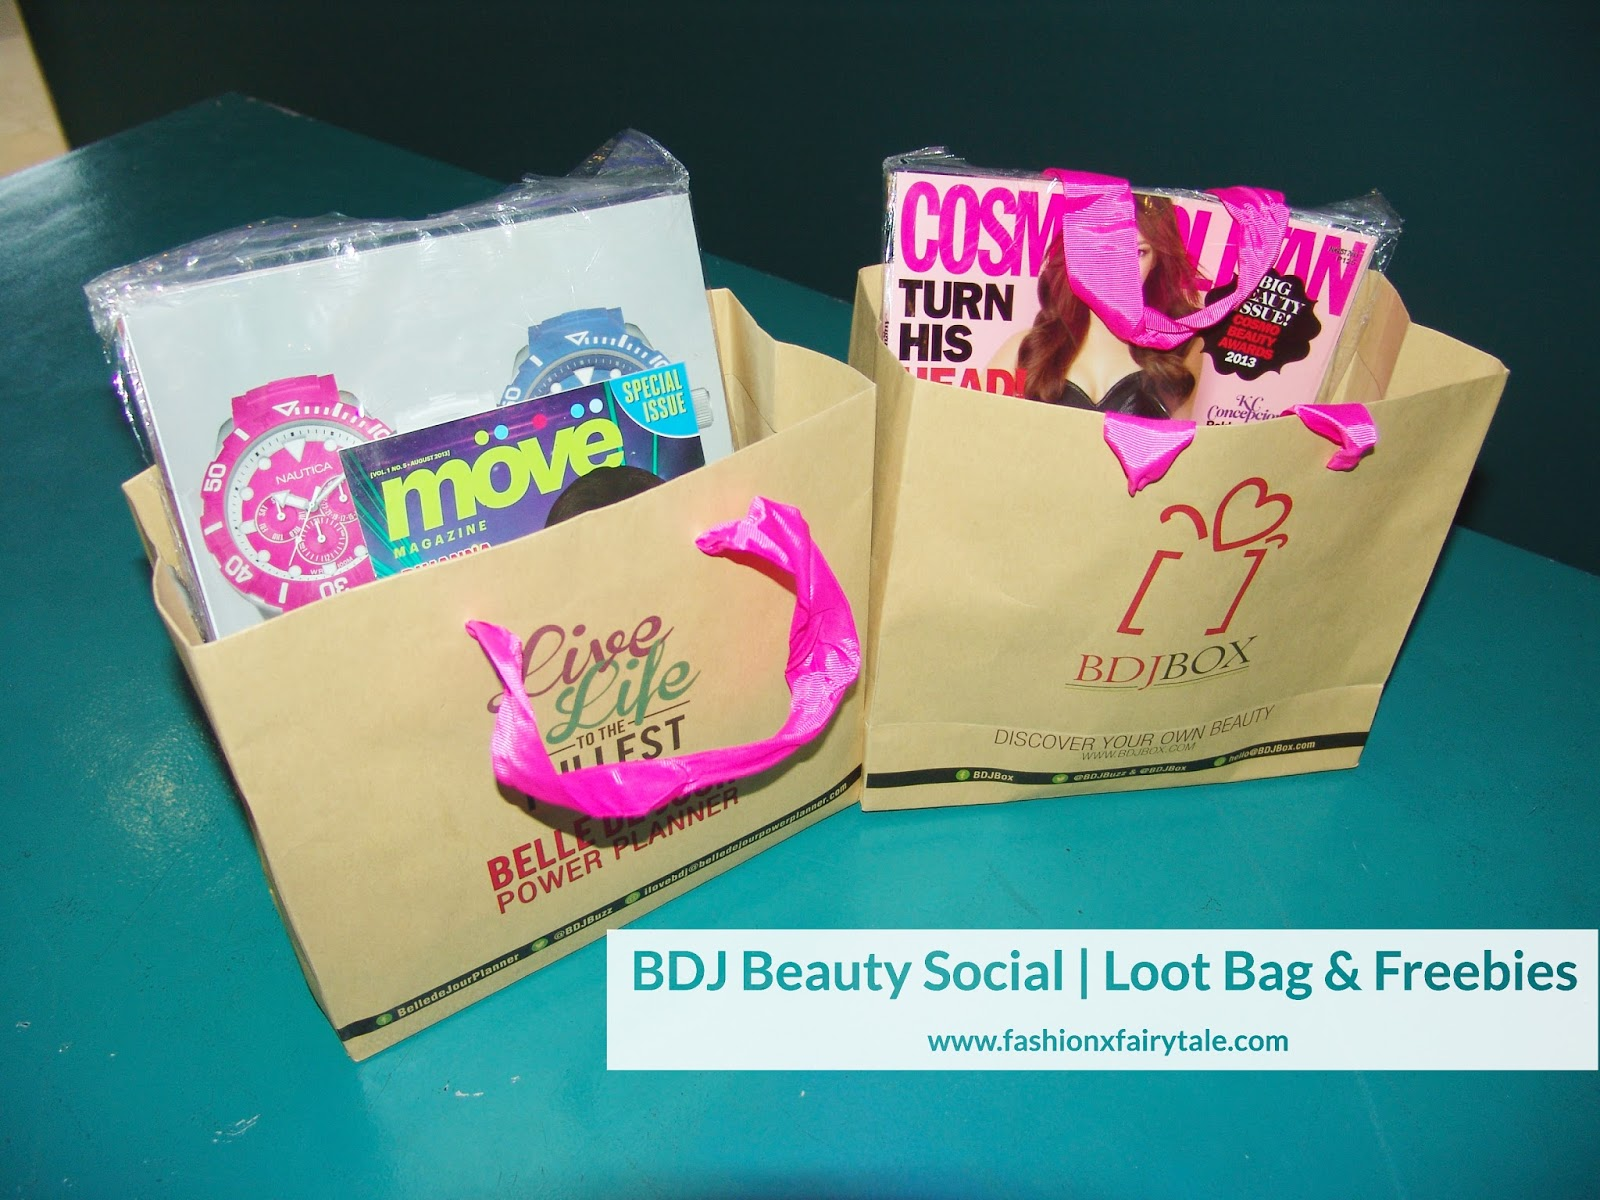 BDJ Beauty Social | Loot Bag & Freebies